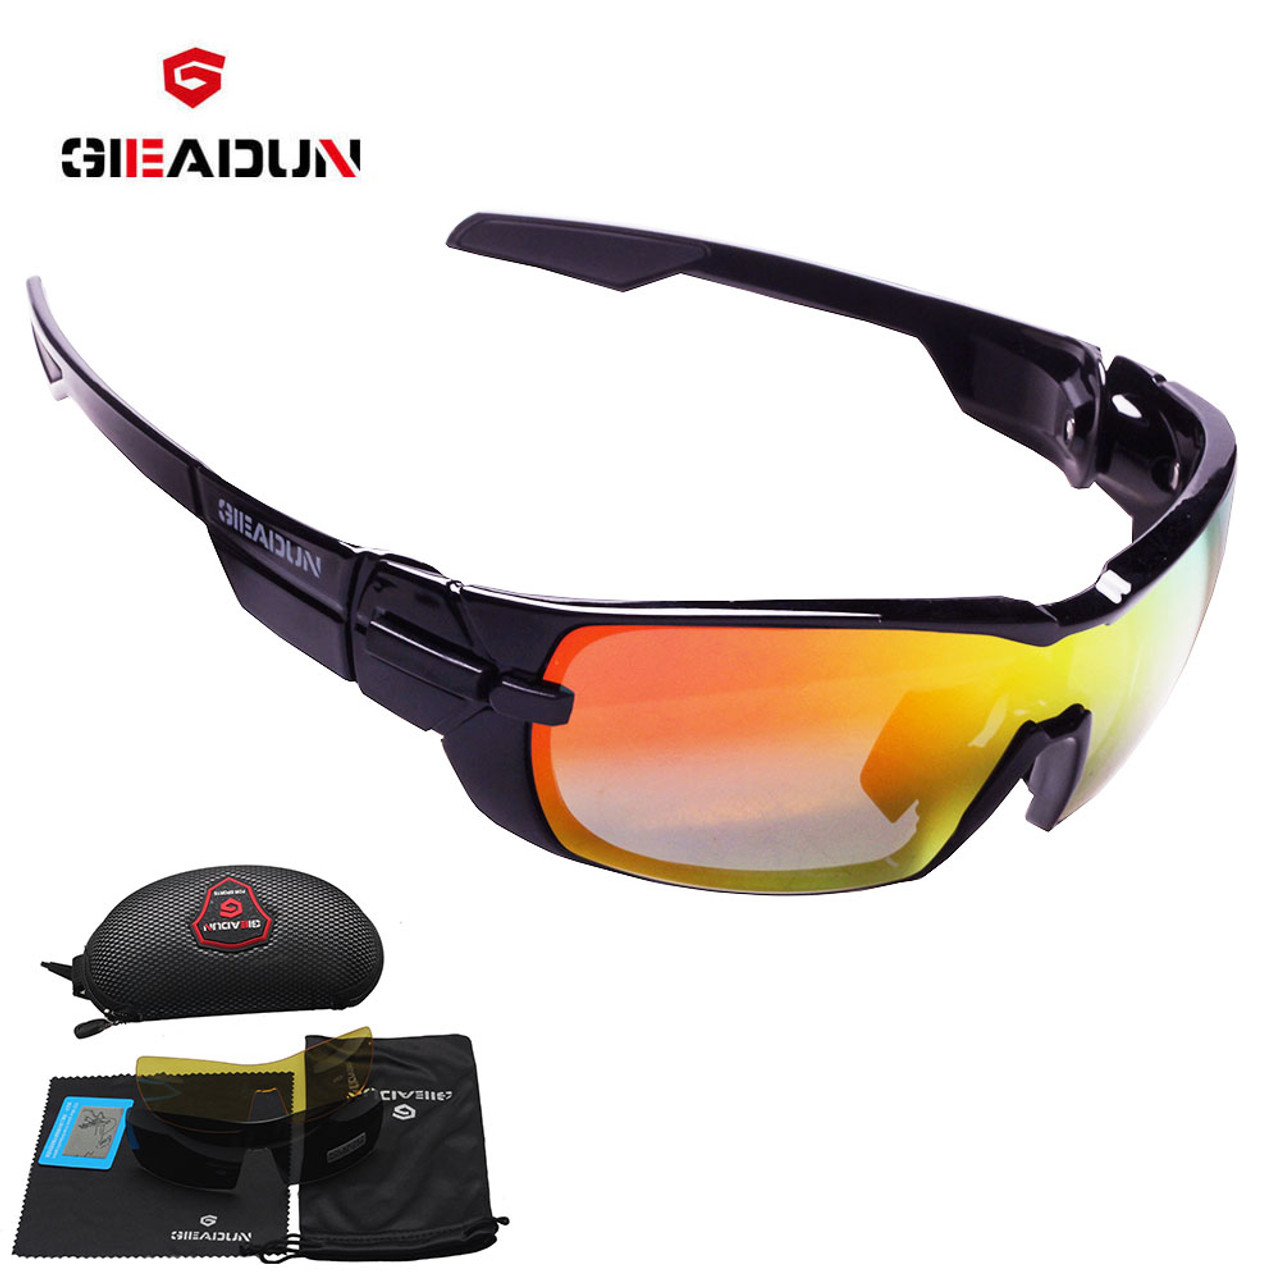 434d7d3bf2 2018 Polarized Cycling Glasses Mountain Bike Goggles 3 Lens UV400 Cycling  Eyewear Bicycle Sunglasses Cycling sunglasses ...